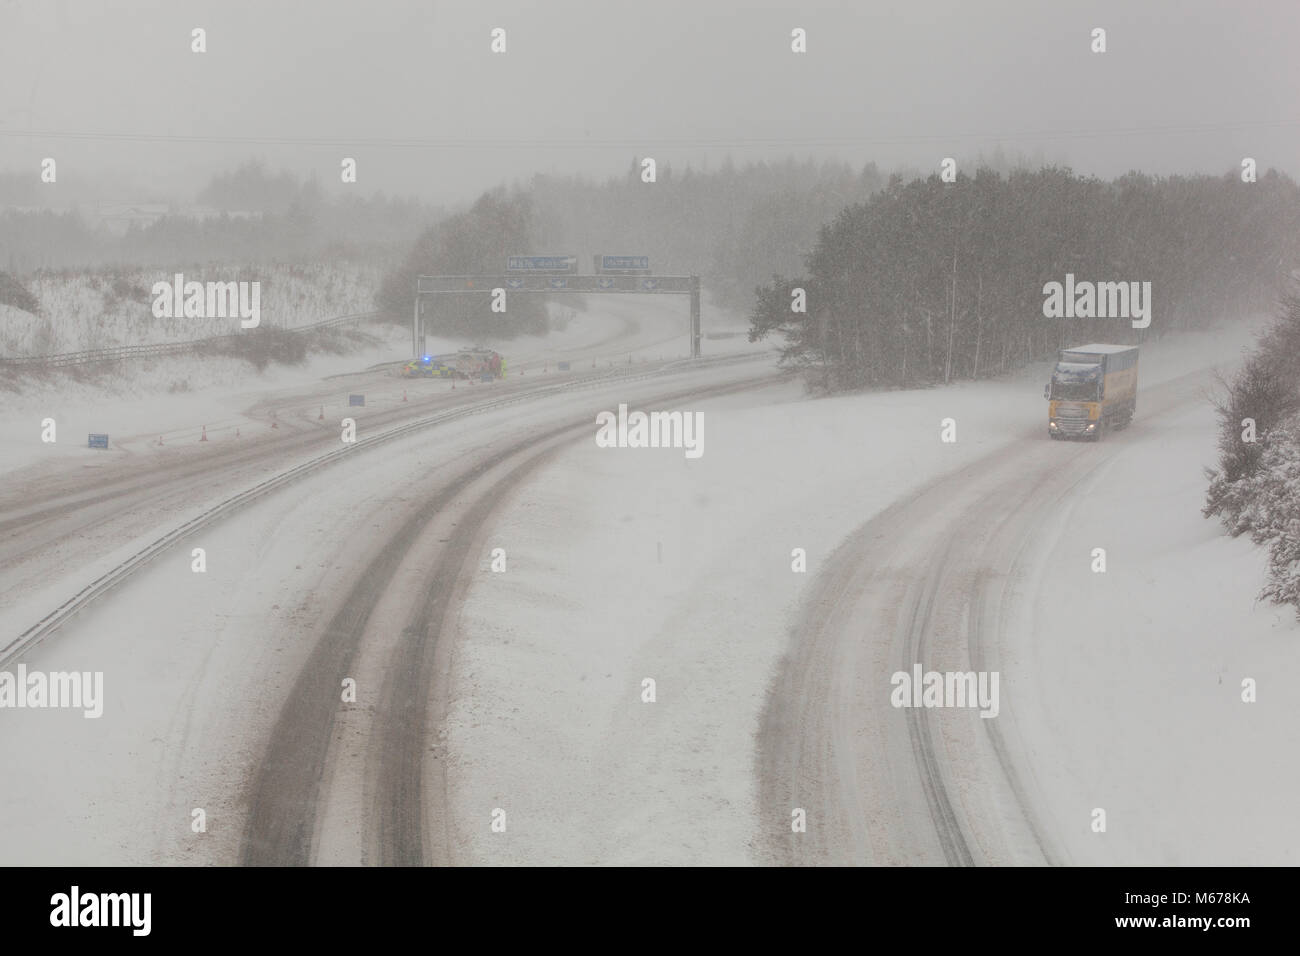 M9, Larbert area, Central Scotland.  1st March 2018 Driving conditions are tricky early morning due to poor visibility - Stock Image